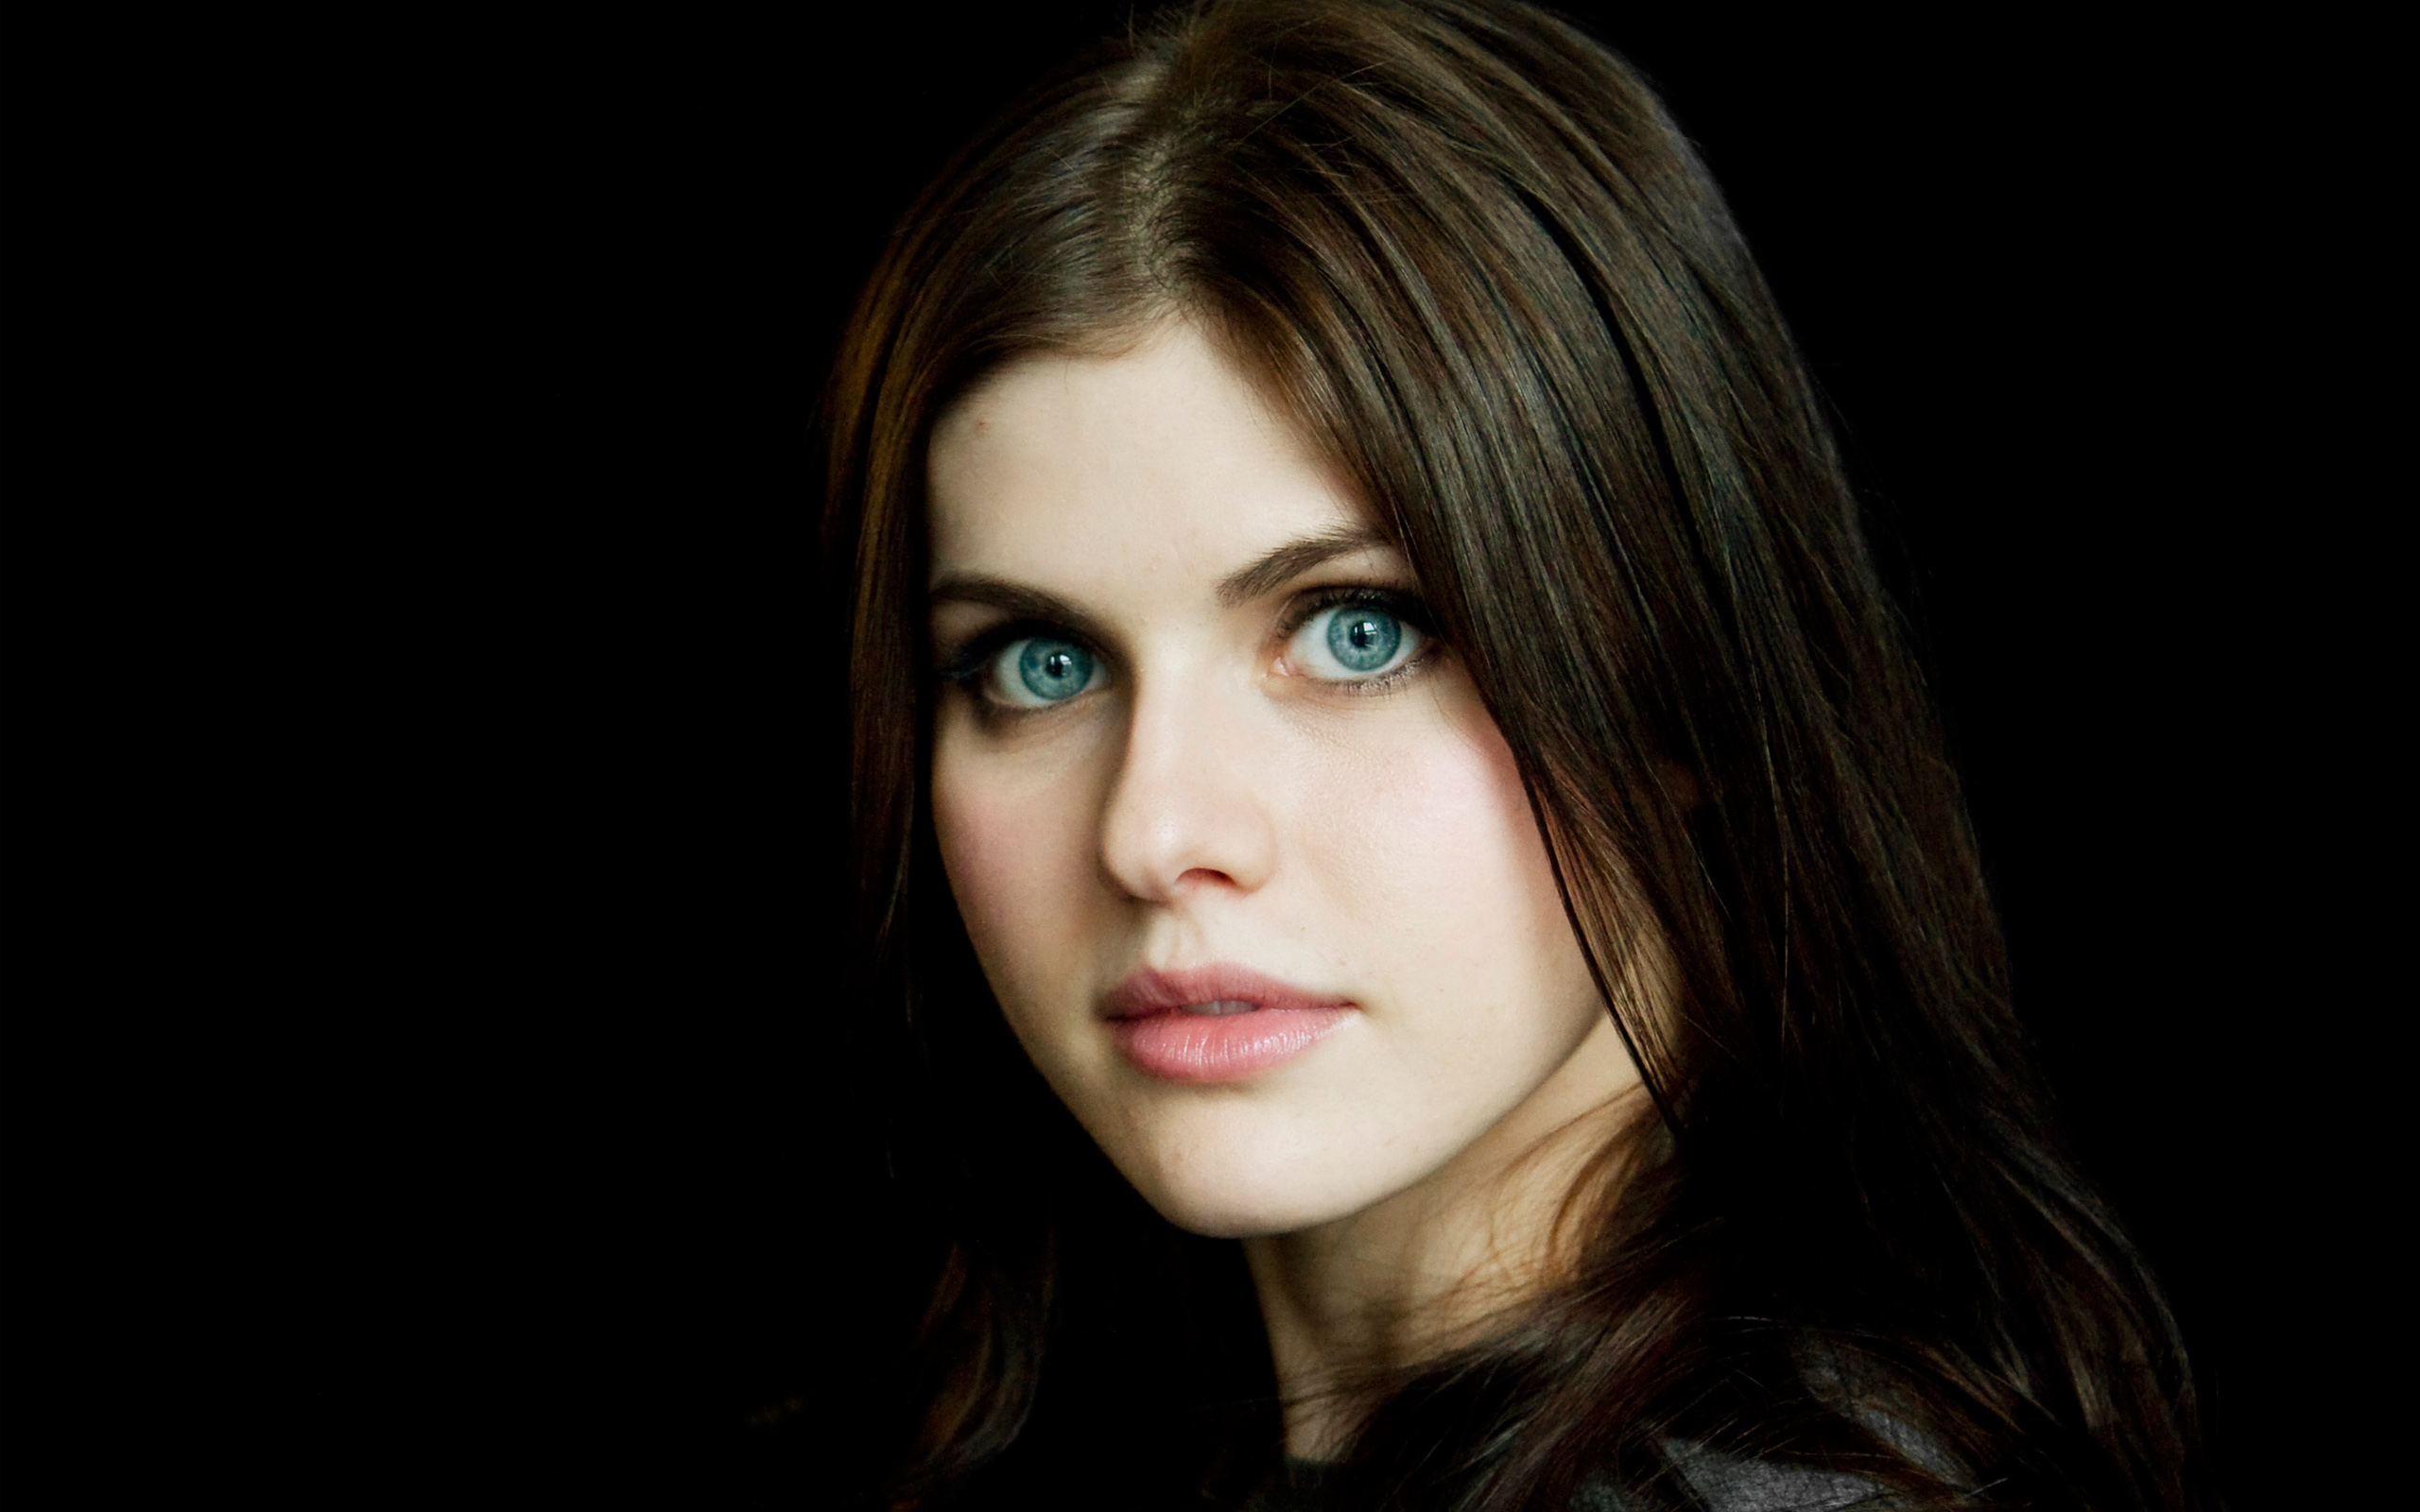 Alexandra Daddario Actress Face Blue Eyes American Black Hair 2560x1600